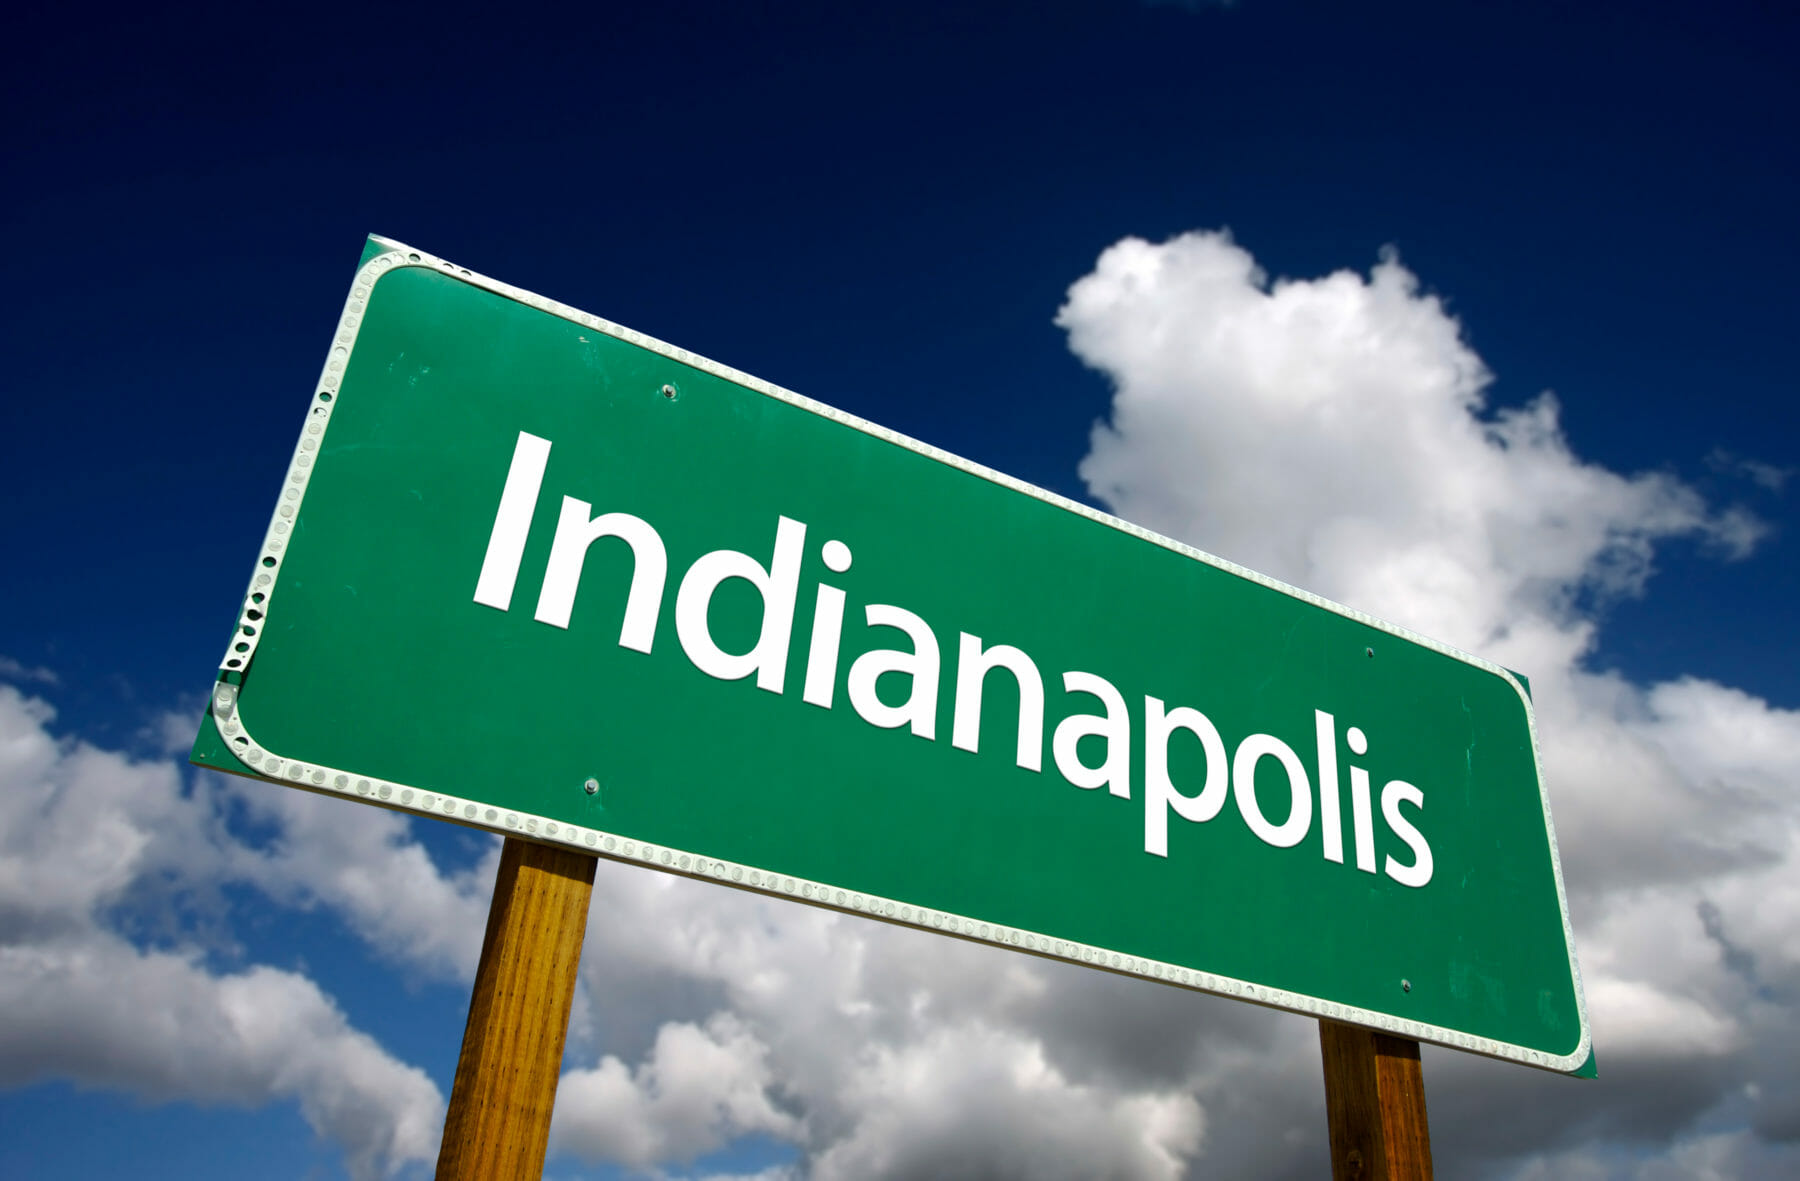 Indianapolis Professional Associations and Organizations List - Job Seekers Blog - JobStars Resume Writing Services